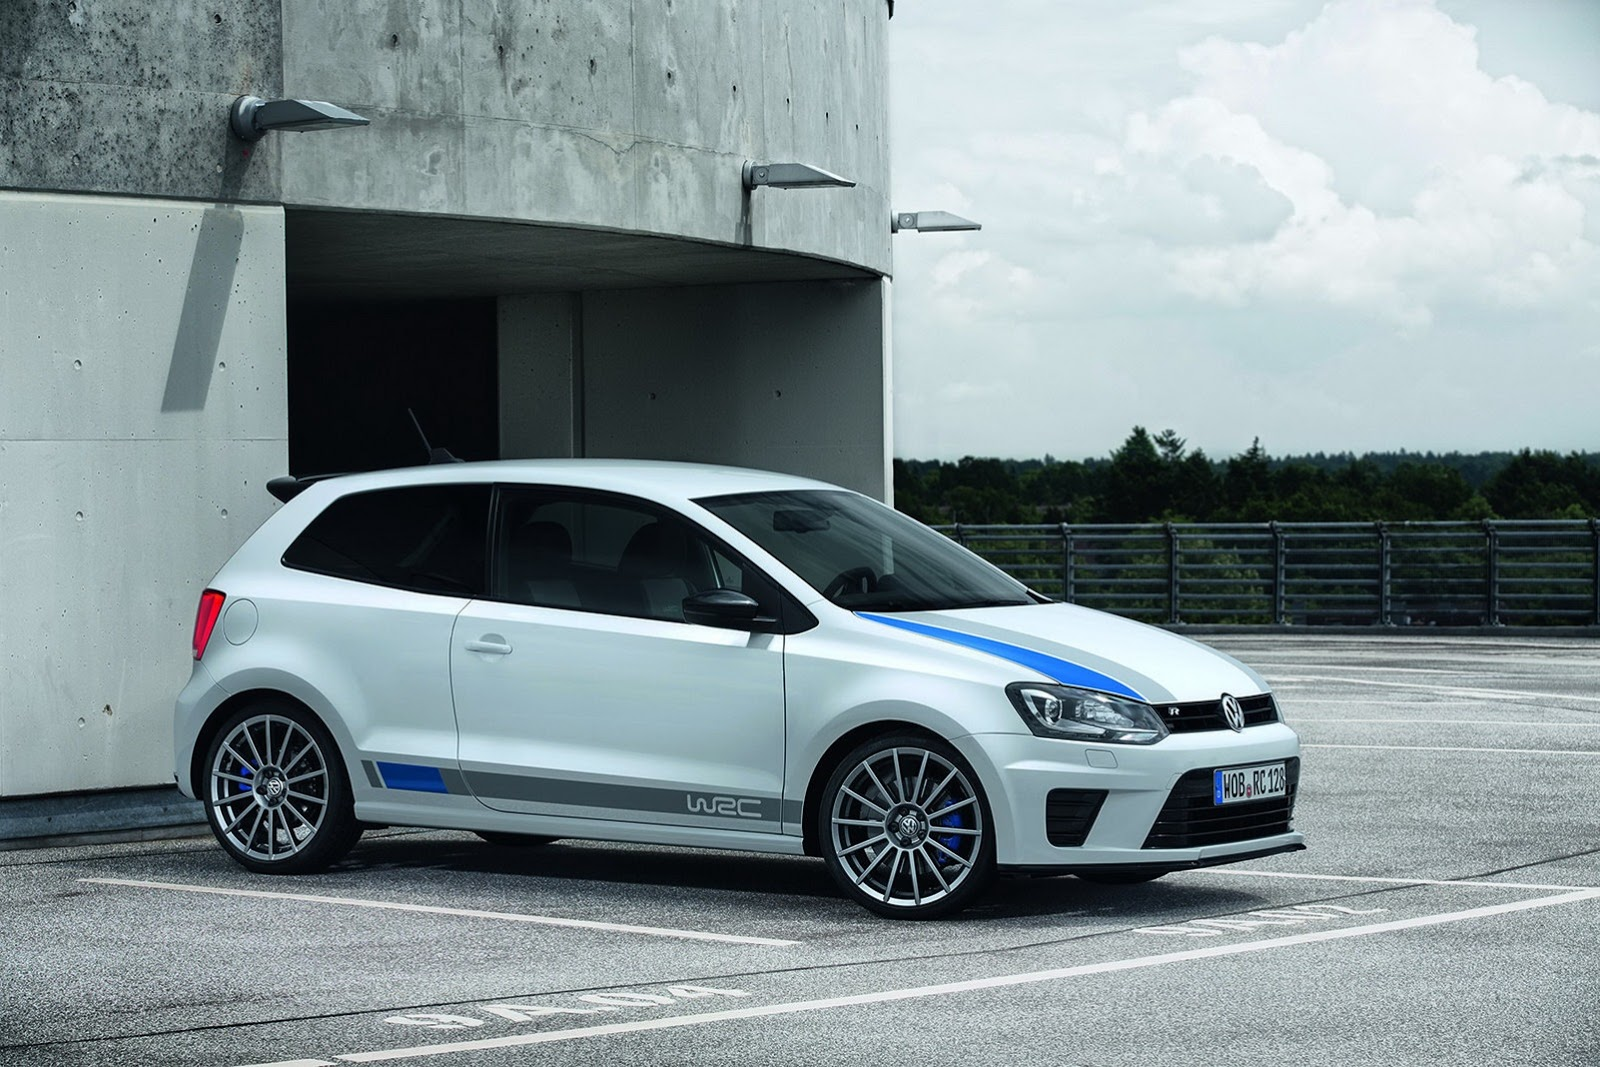 2019 Volkswagen Polo R WRC Street Concept photo - 1